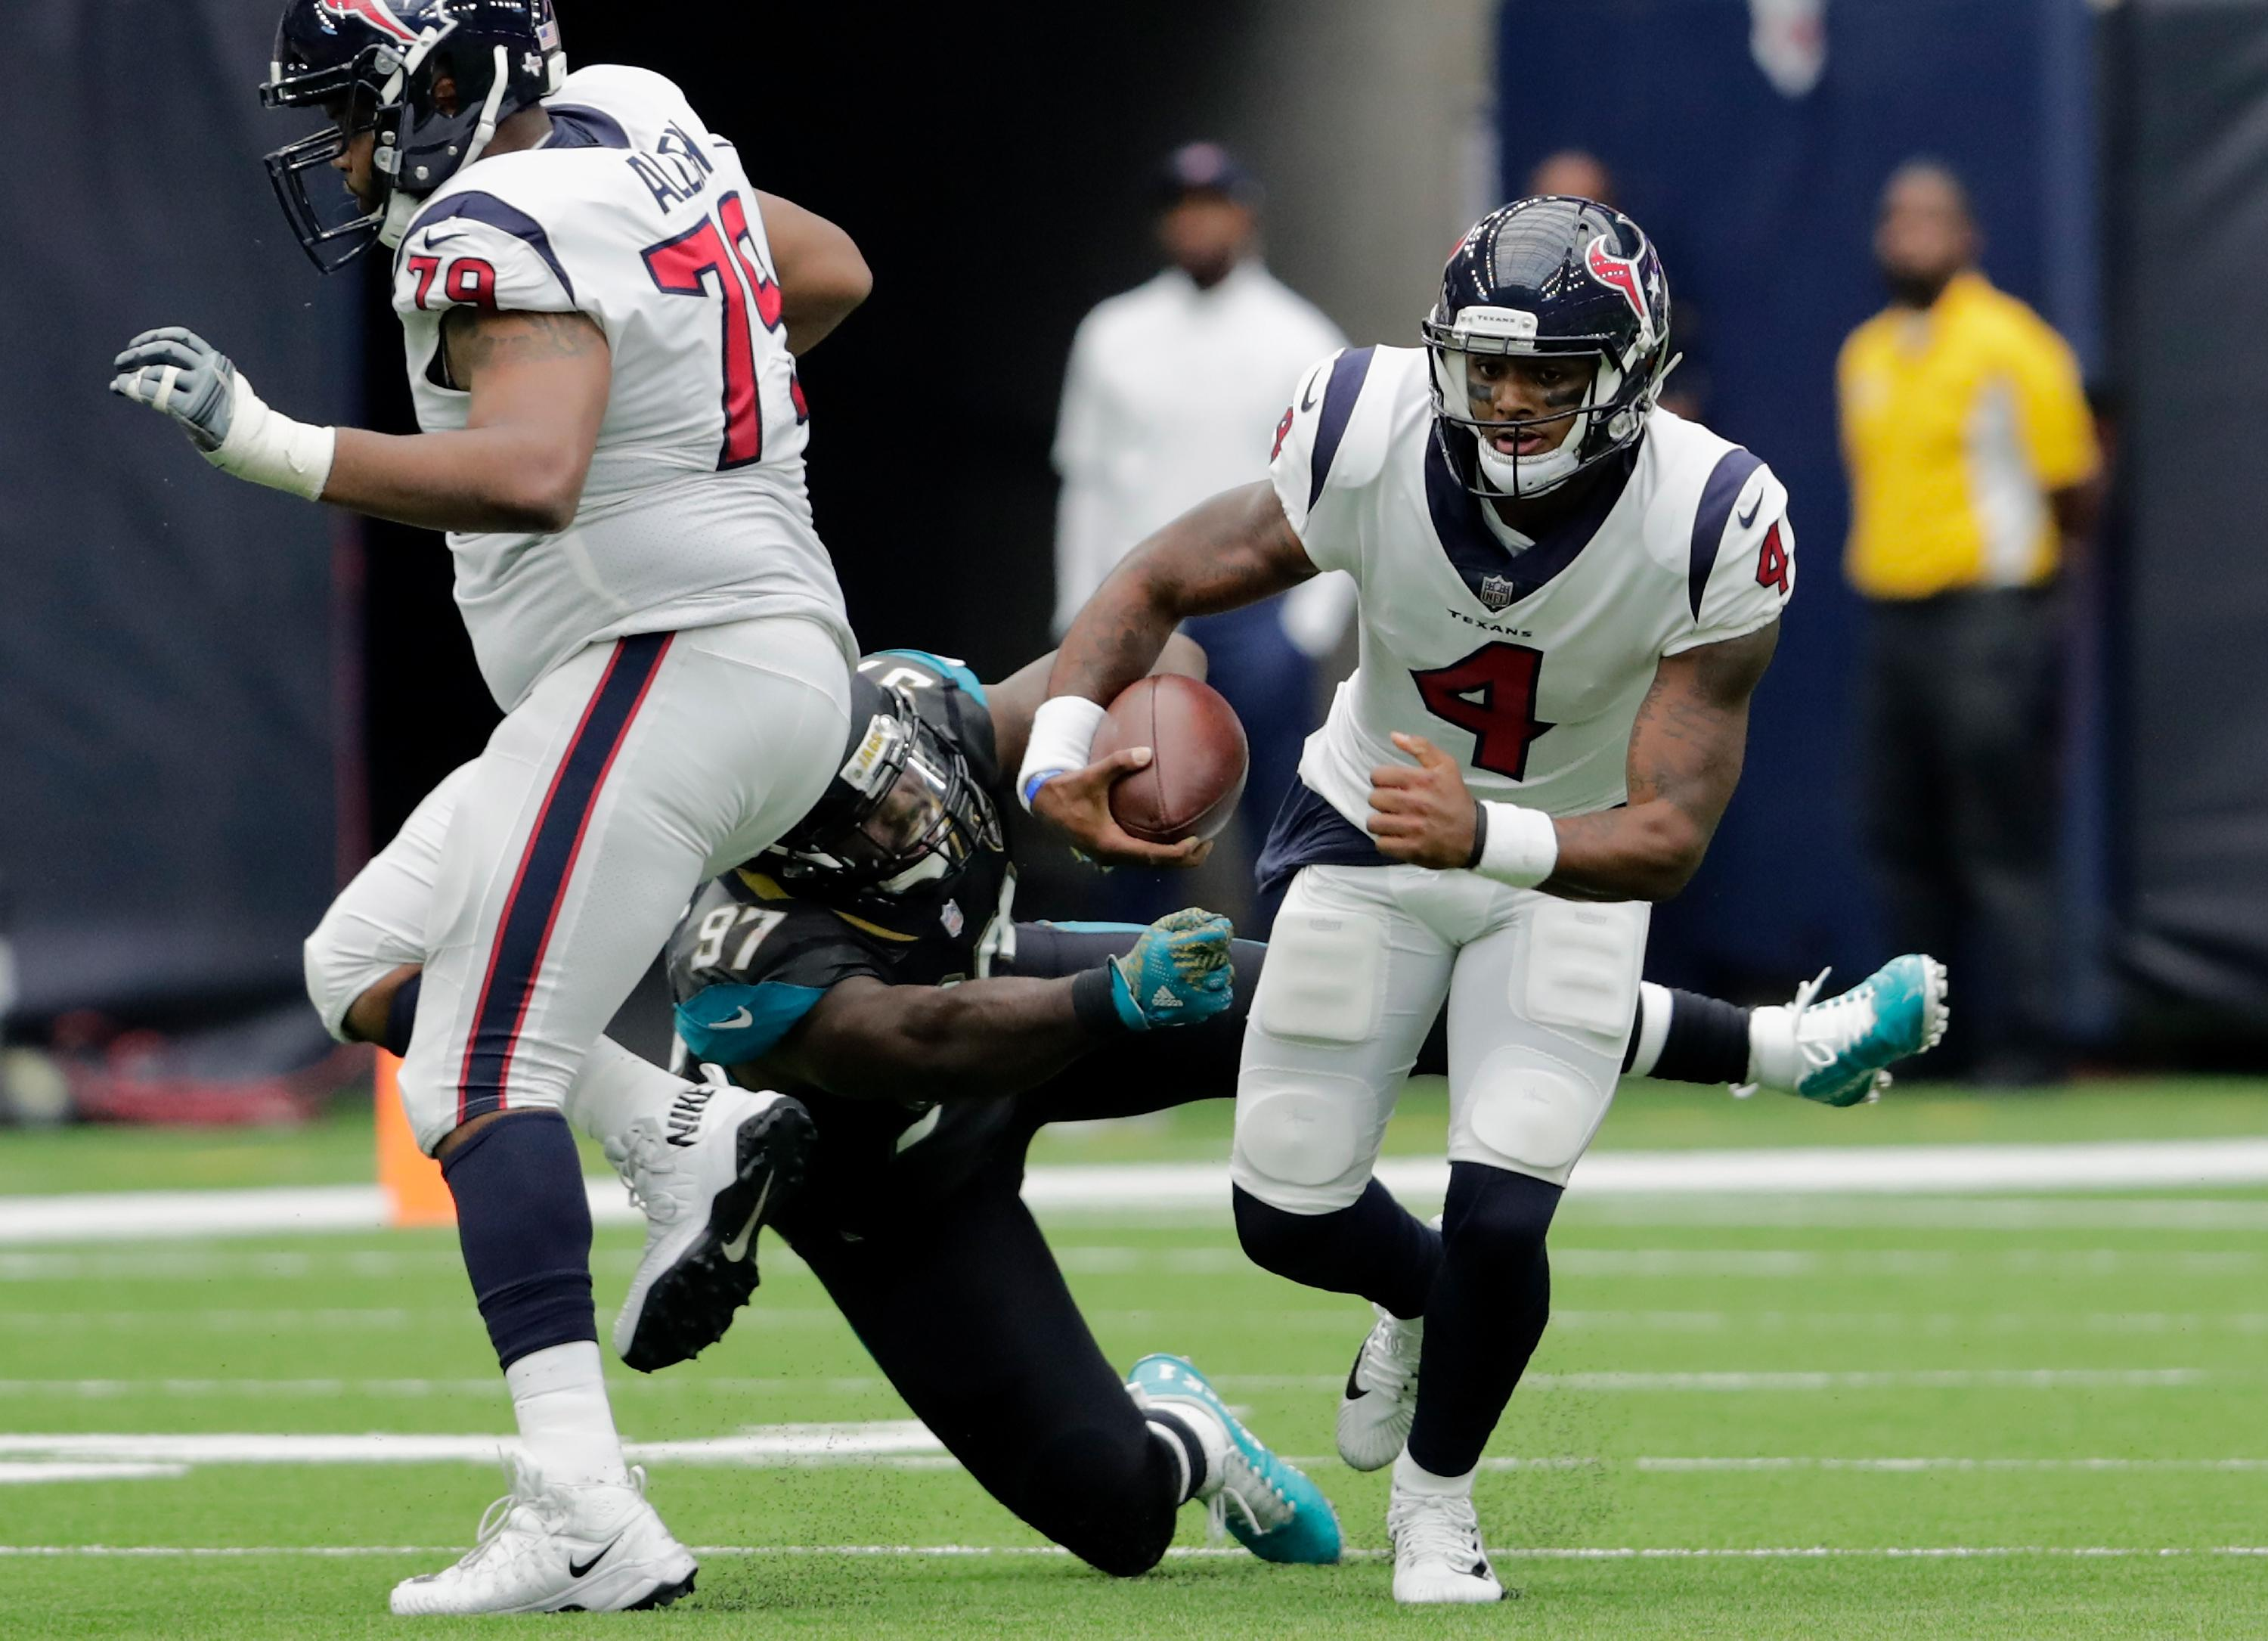 Texans' fans react to Tom Savage being benched for Deshaun Watson